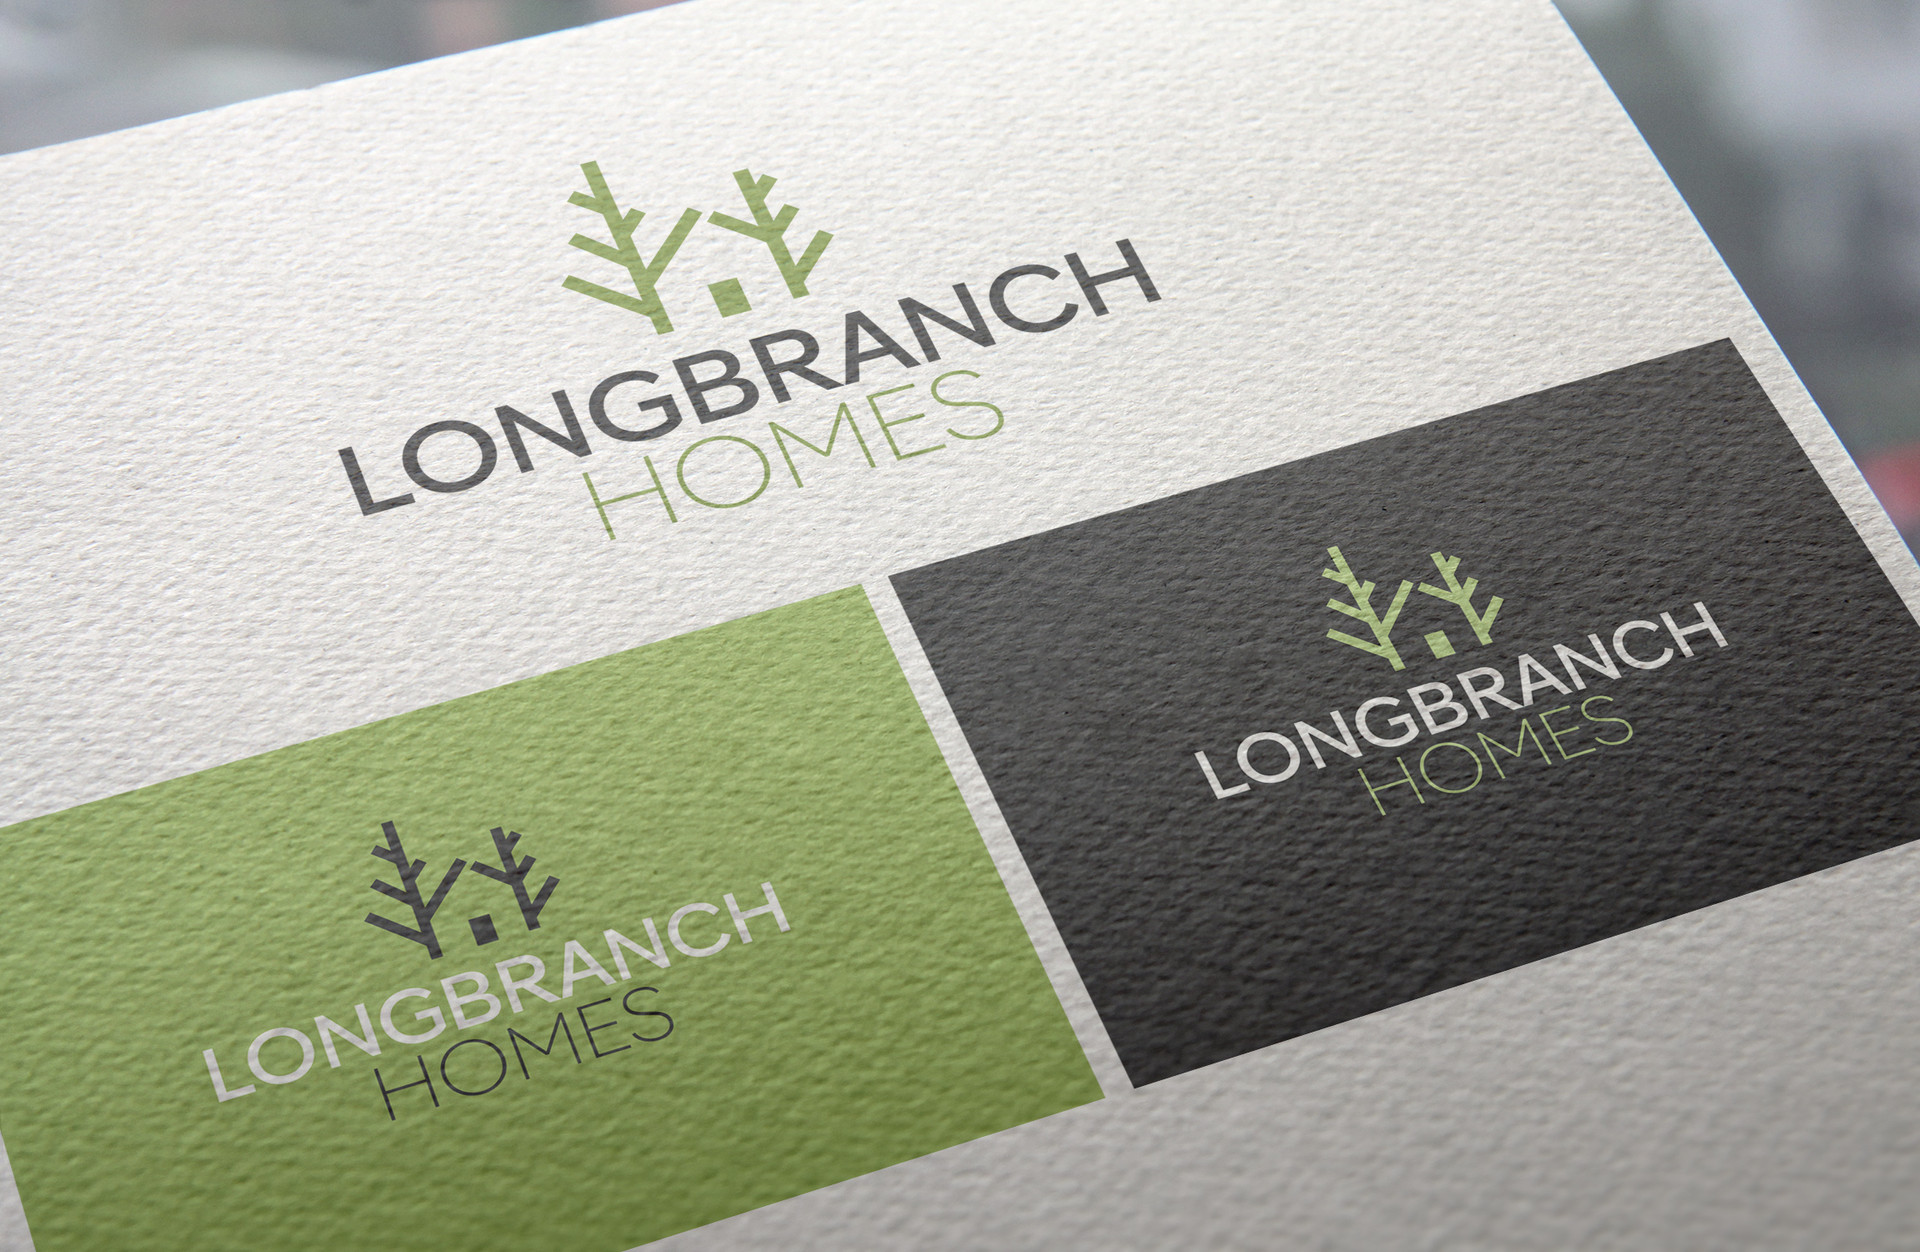 Lonbranch Homes Logo Design